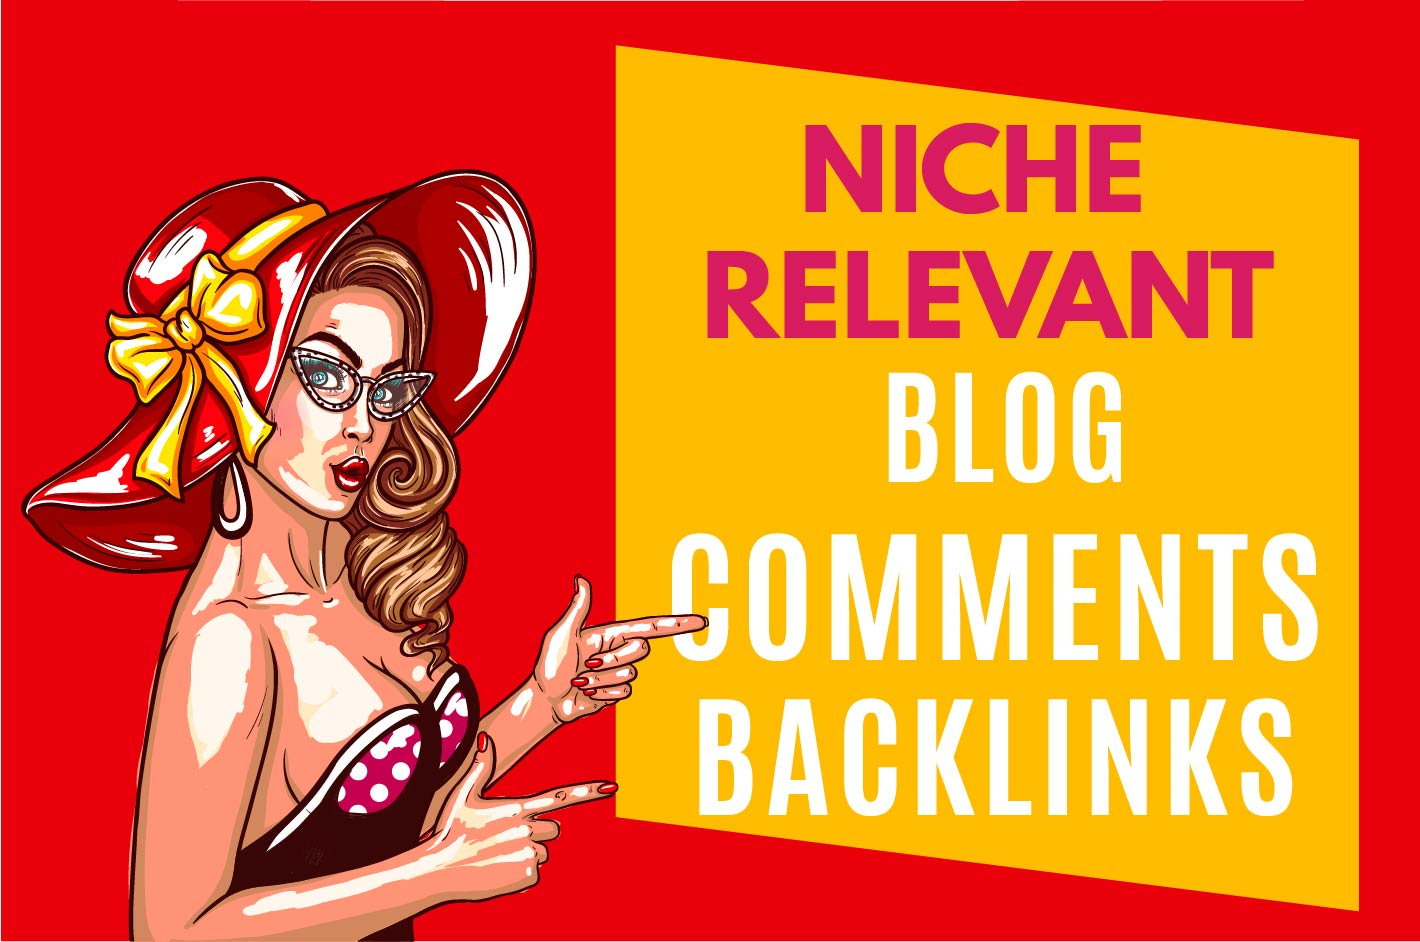 I will provide 105 niche relevant blog comments